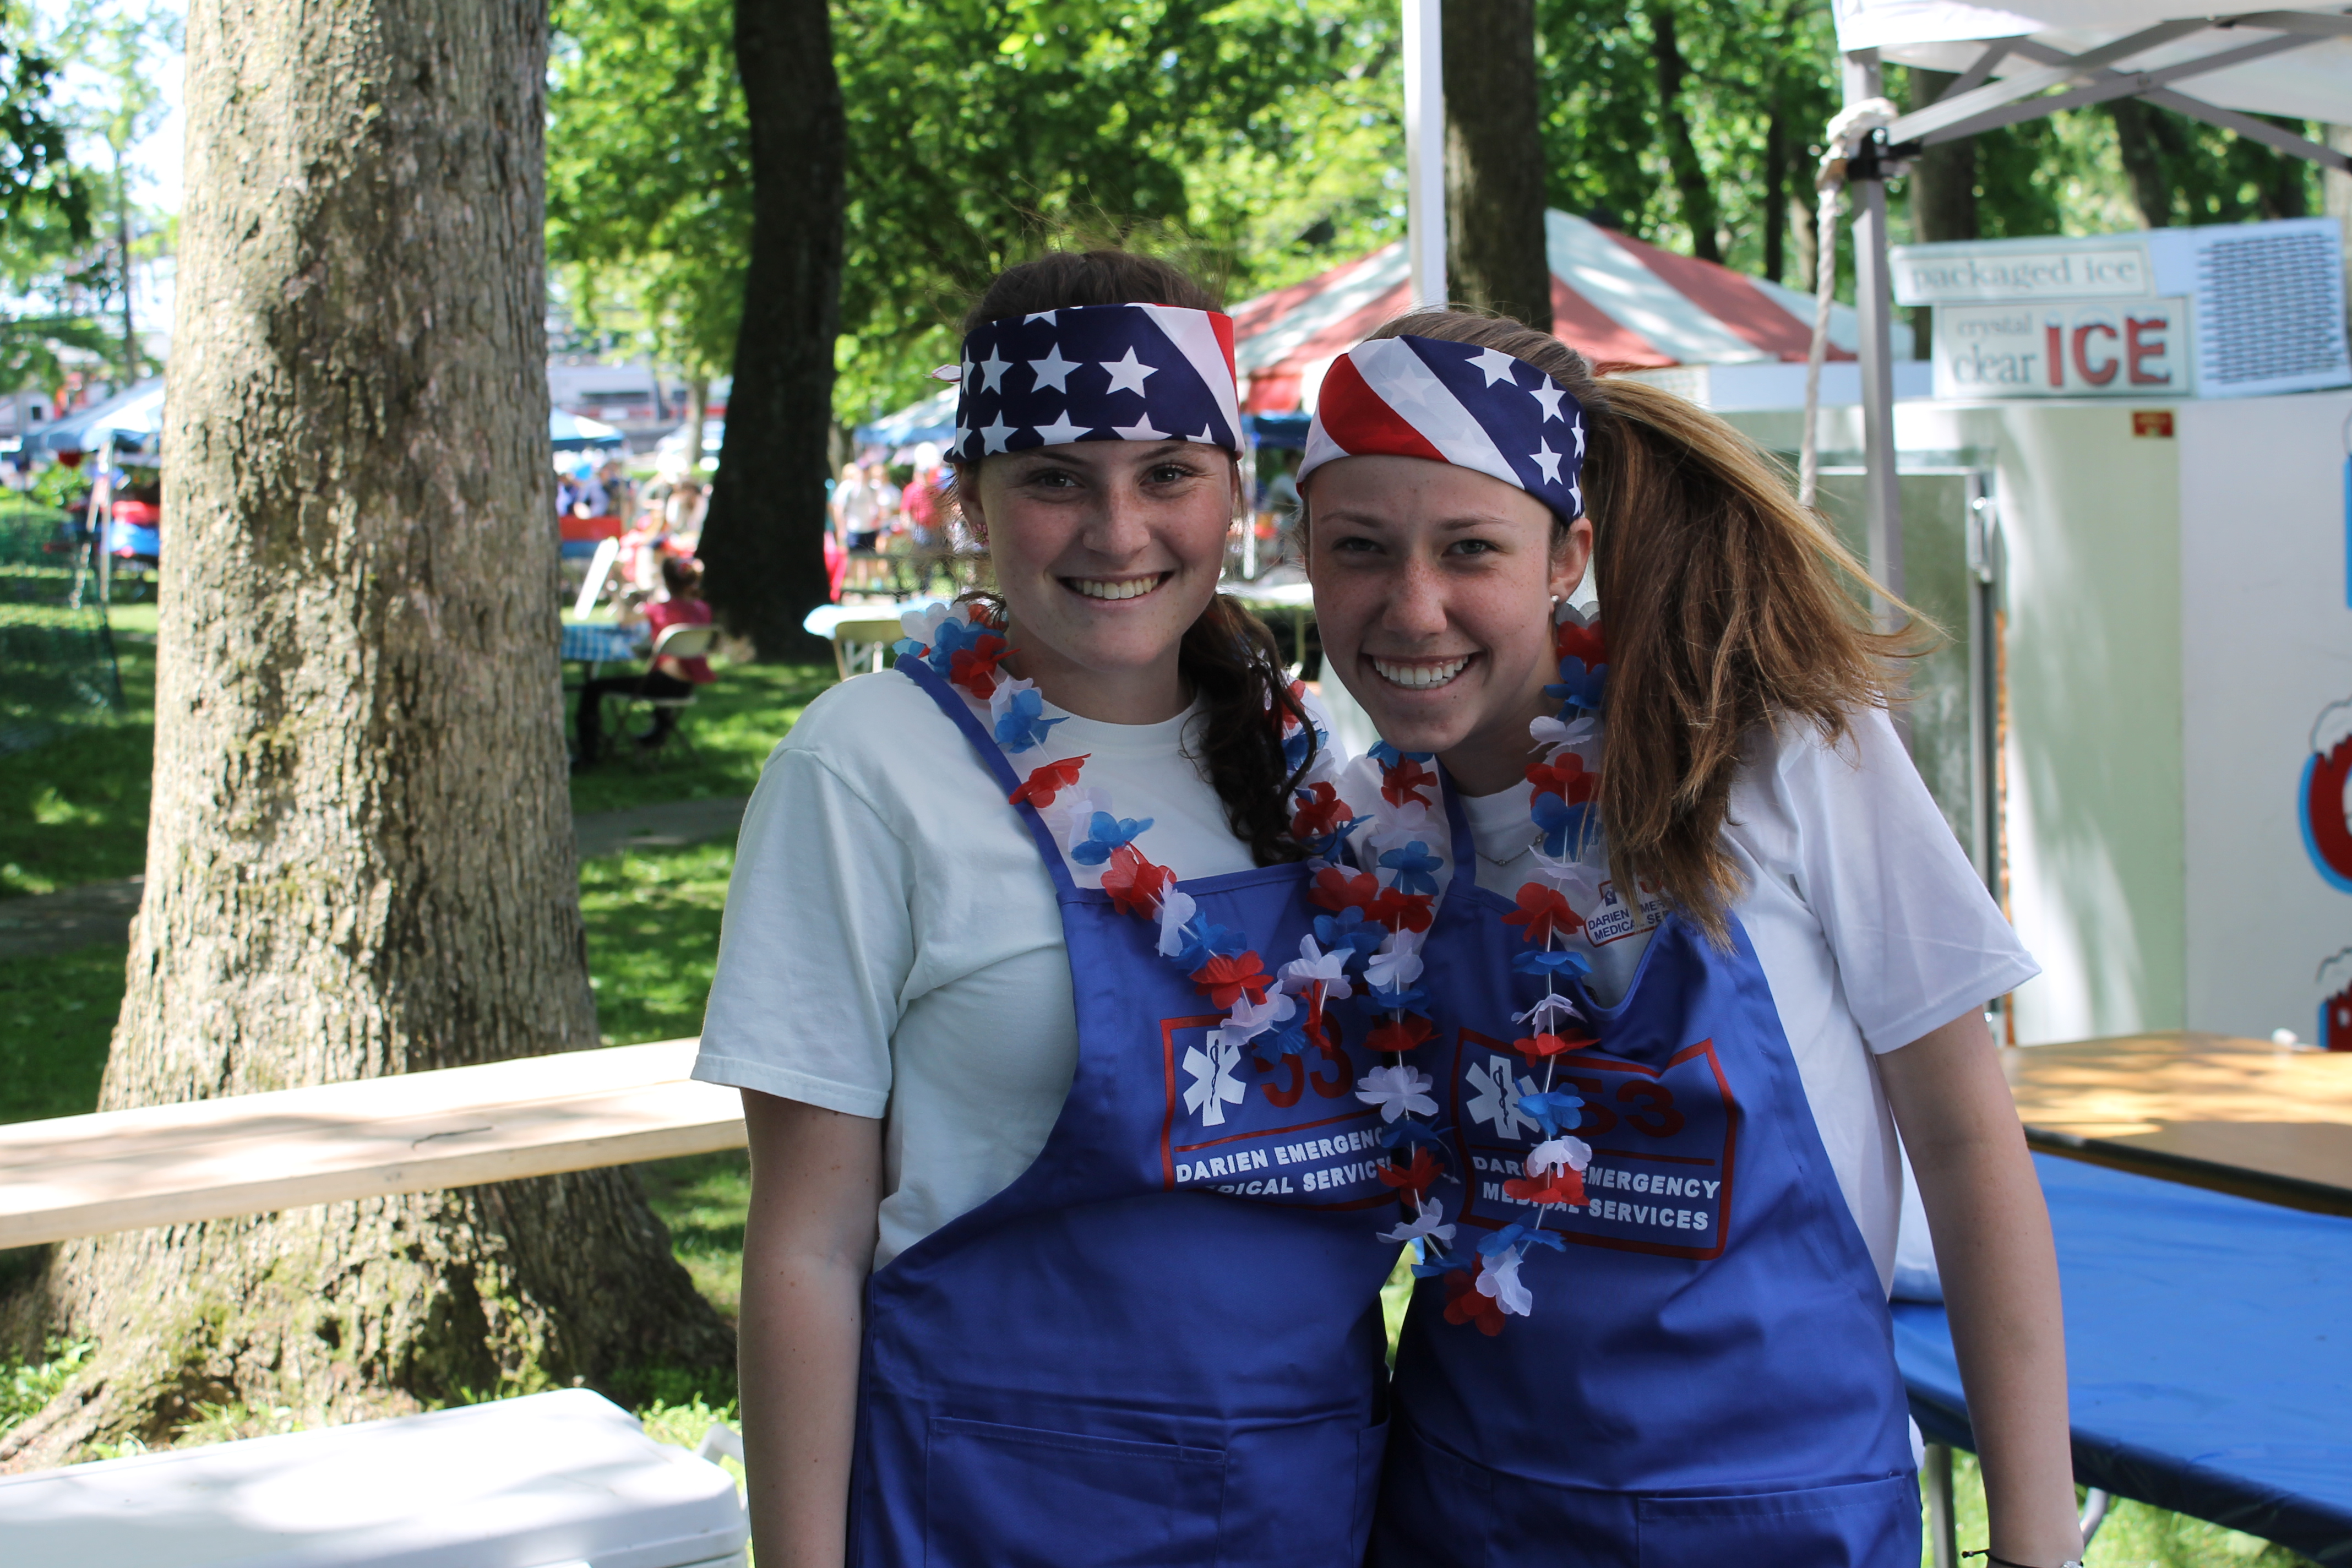 Darien EMS Post 53 will host the annual Food Fair on Memorial Day. Pictured, from left, are Post 53 members Bridget Hannigan and Kaleigh Conway.